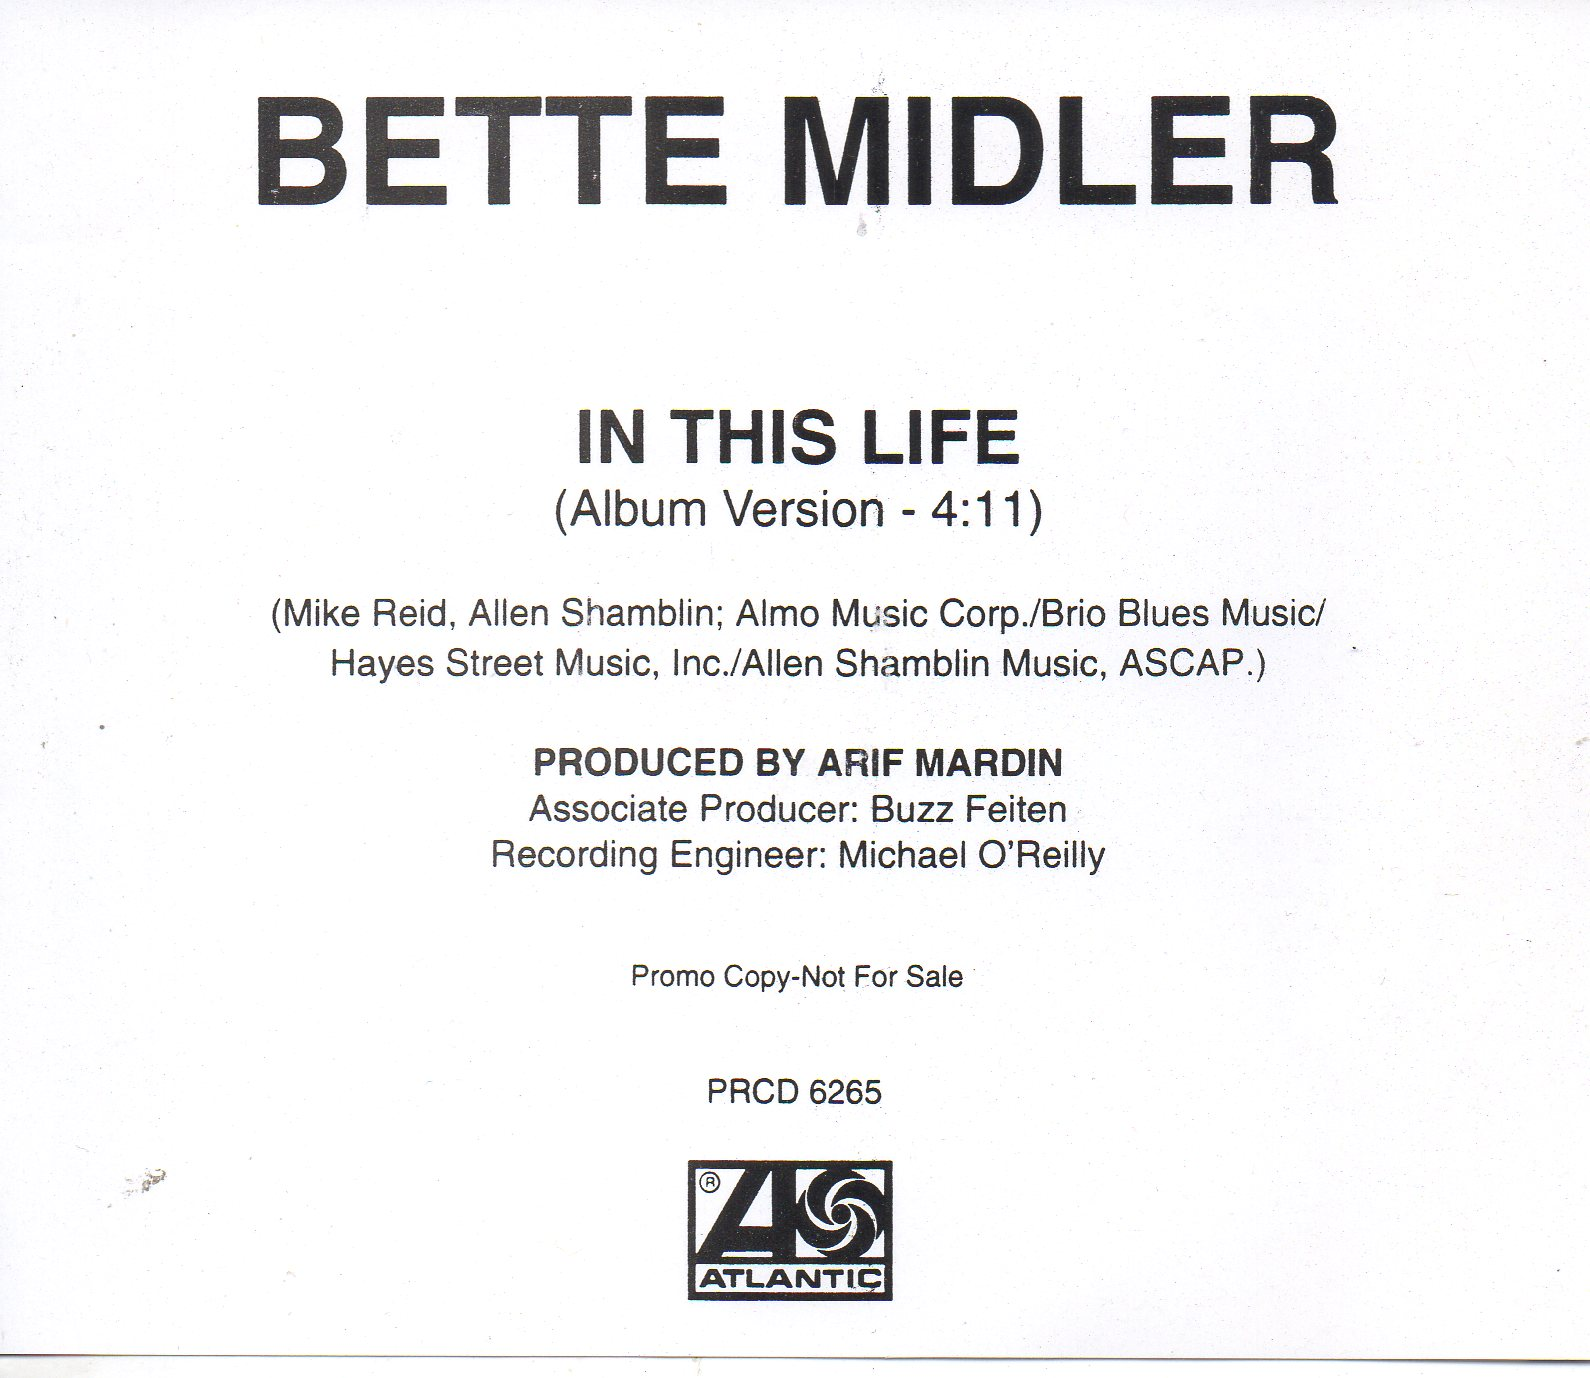 BETTE MIDLER - THE BEATLES - SOUNDTRACK FOR THE BO - In my life Promo USA 1-track jewel case - CD Maxi